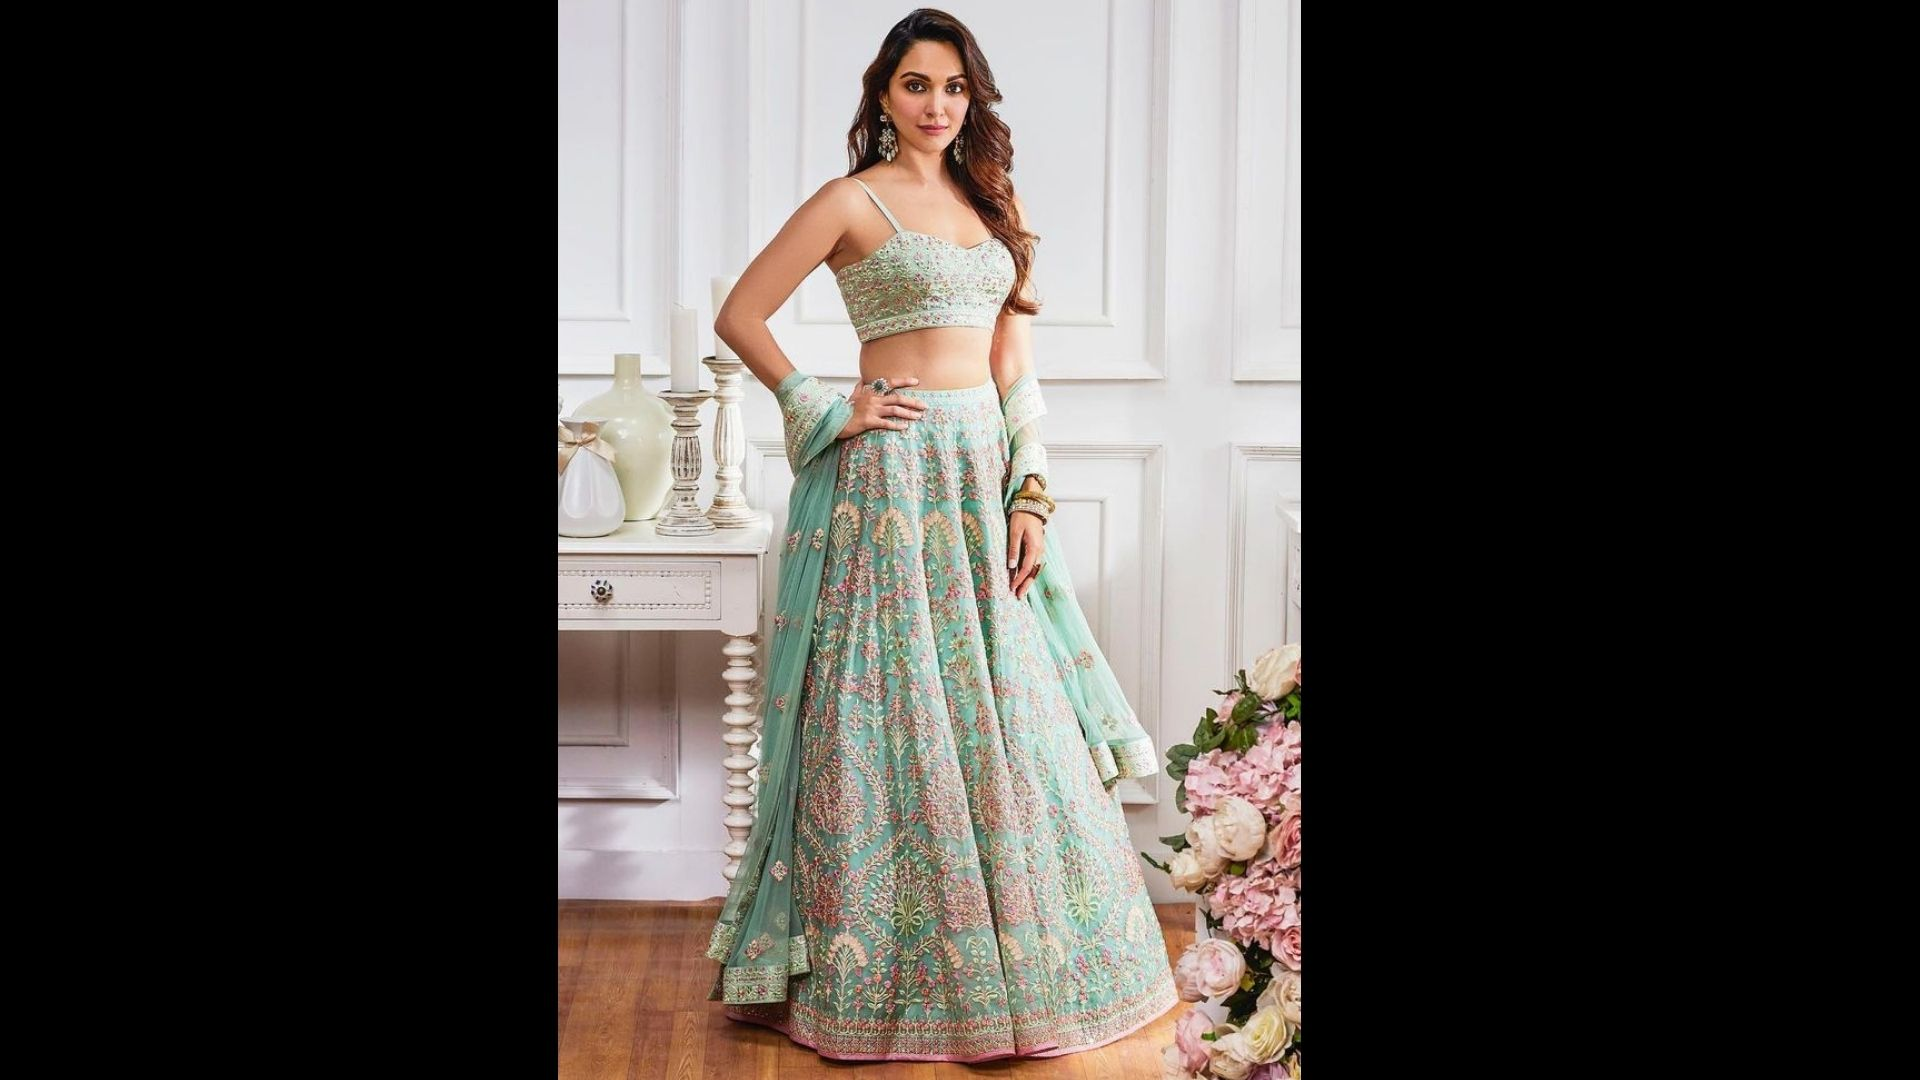 Kiara Advani Will Make You Ditch Red This Karwa Chauth And Don This Aqua Lehenga; Its Price Will Burn A Hole In Your Pocke